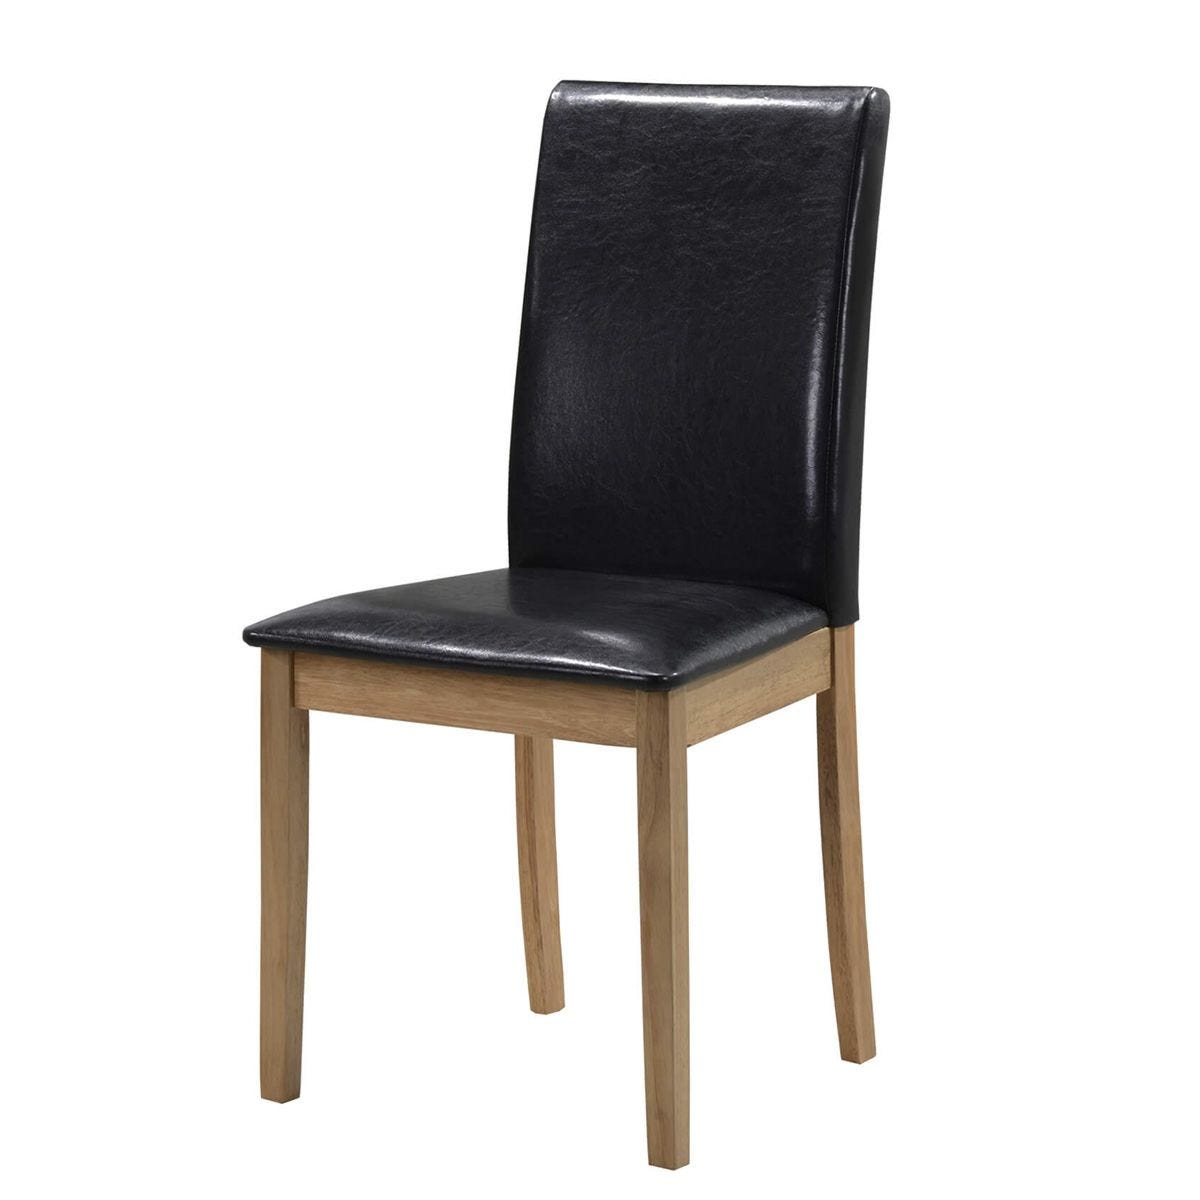 Set Of 2 Healey Solid Rubberwood Chairs With Faux Leather Seats - Black